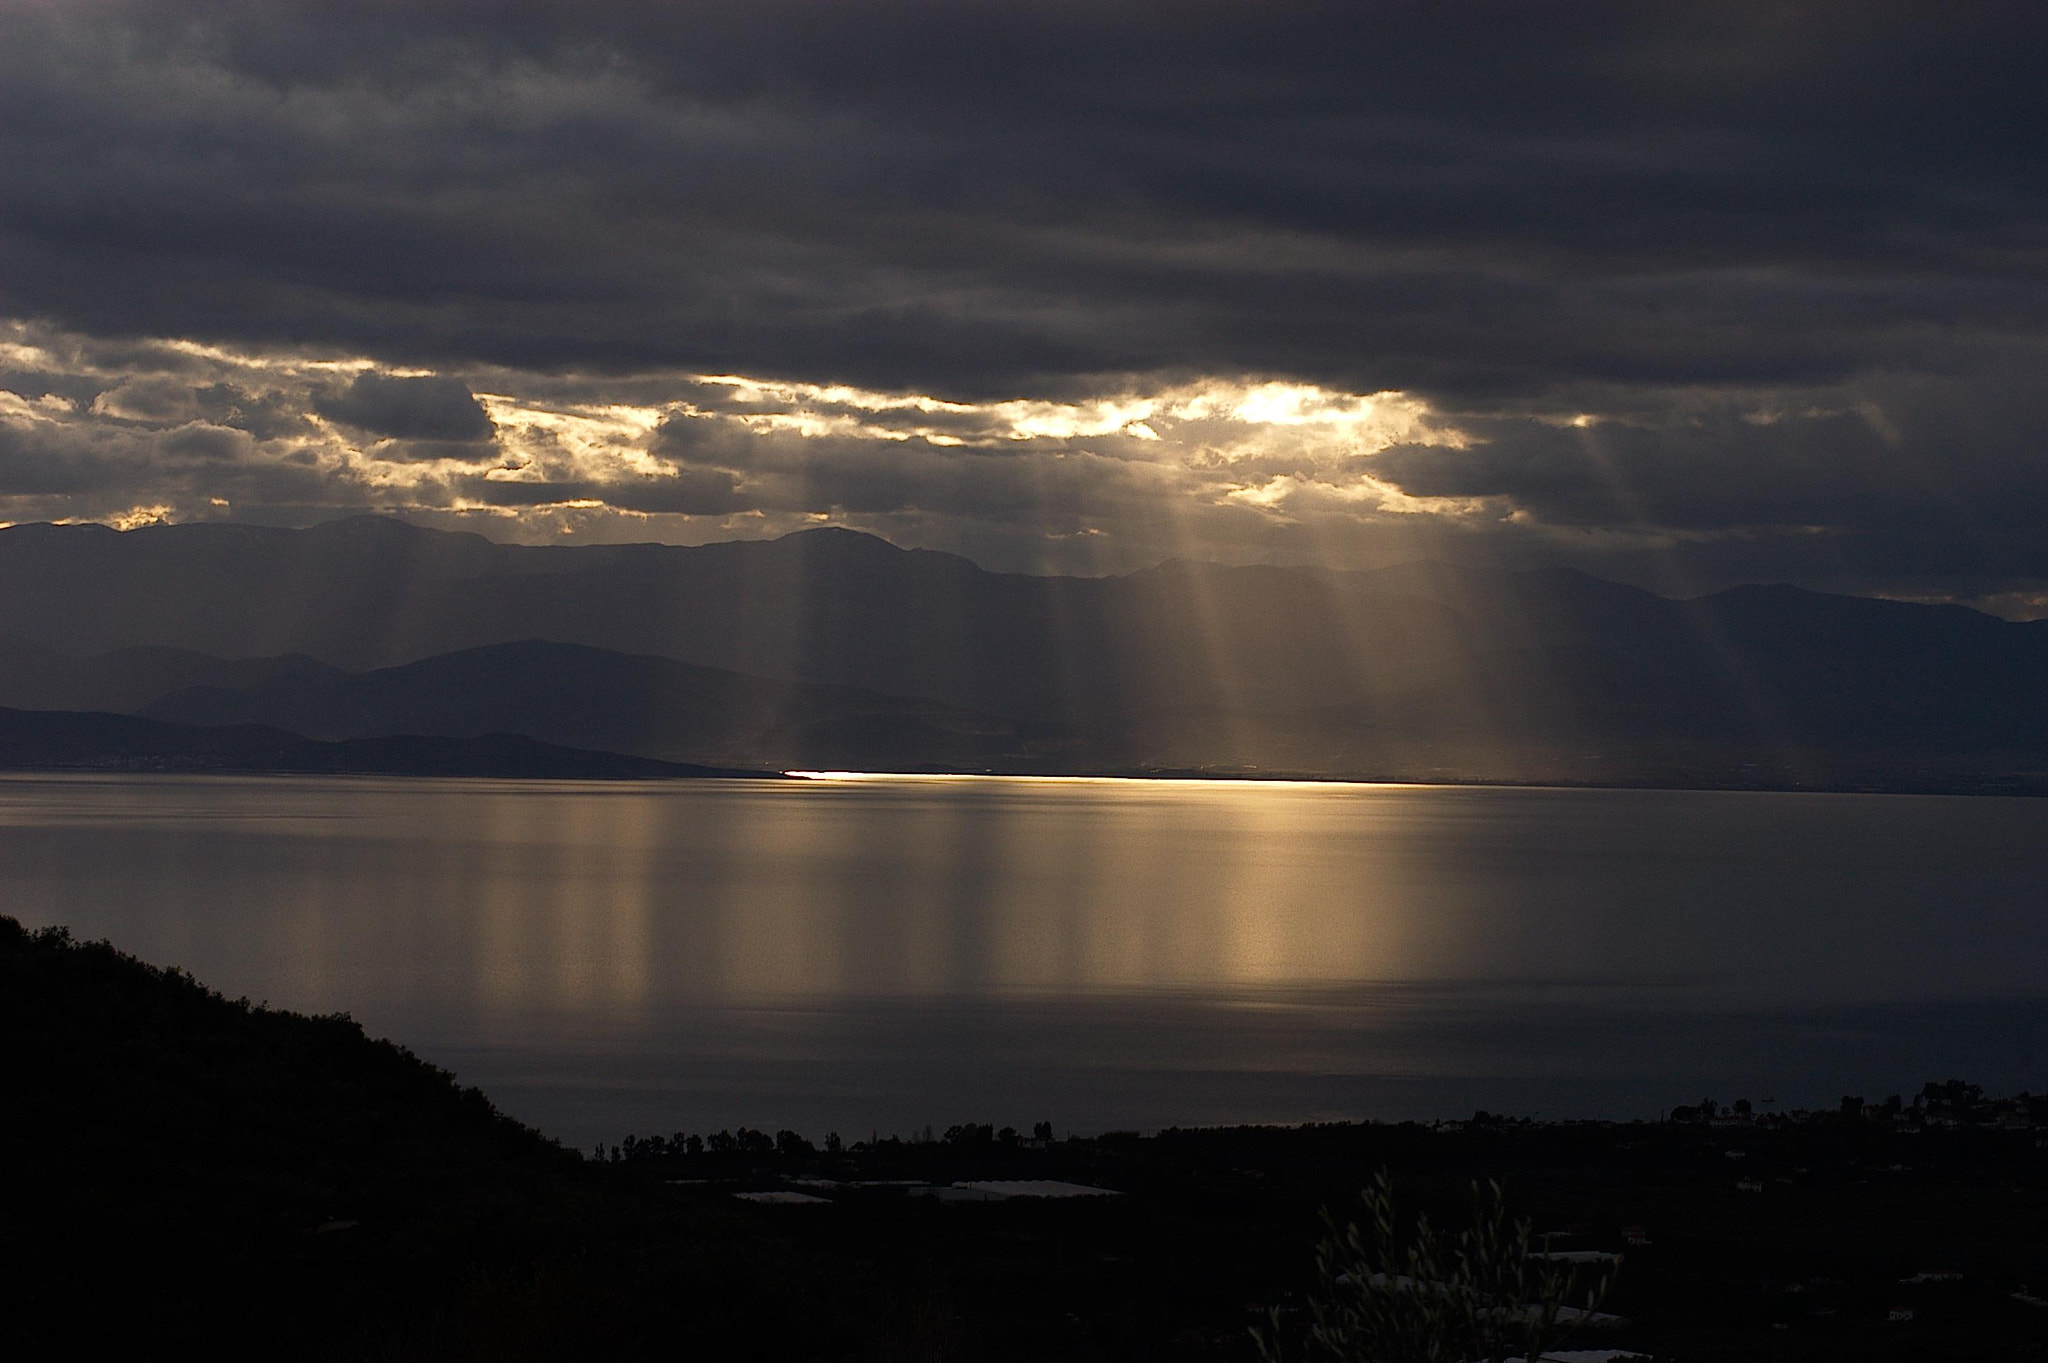 Photograph Sunrays by Nickolas Mavrogiannis on 500px